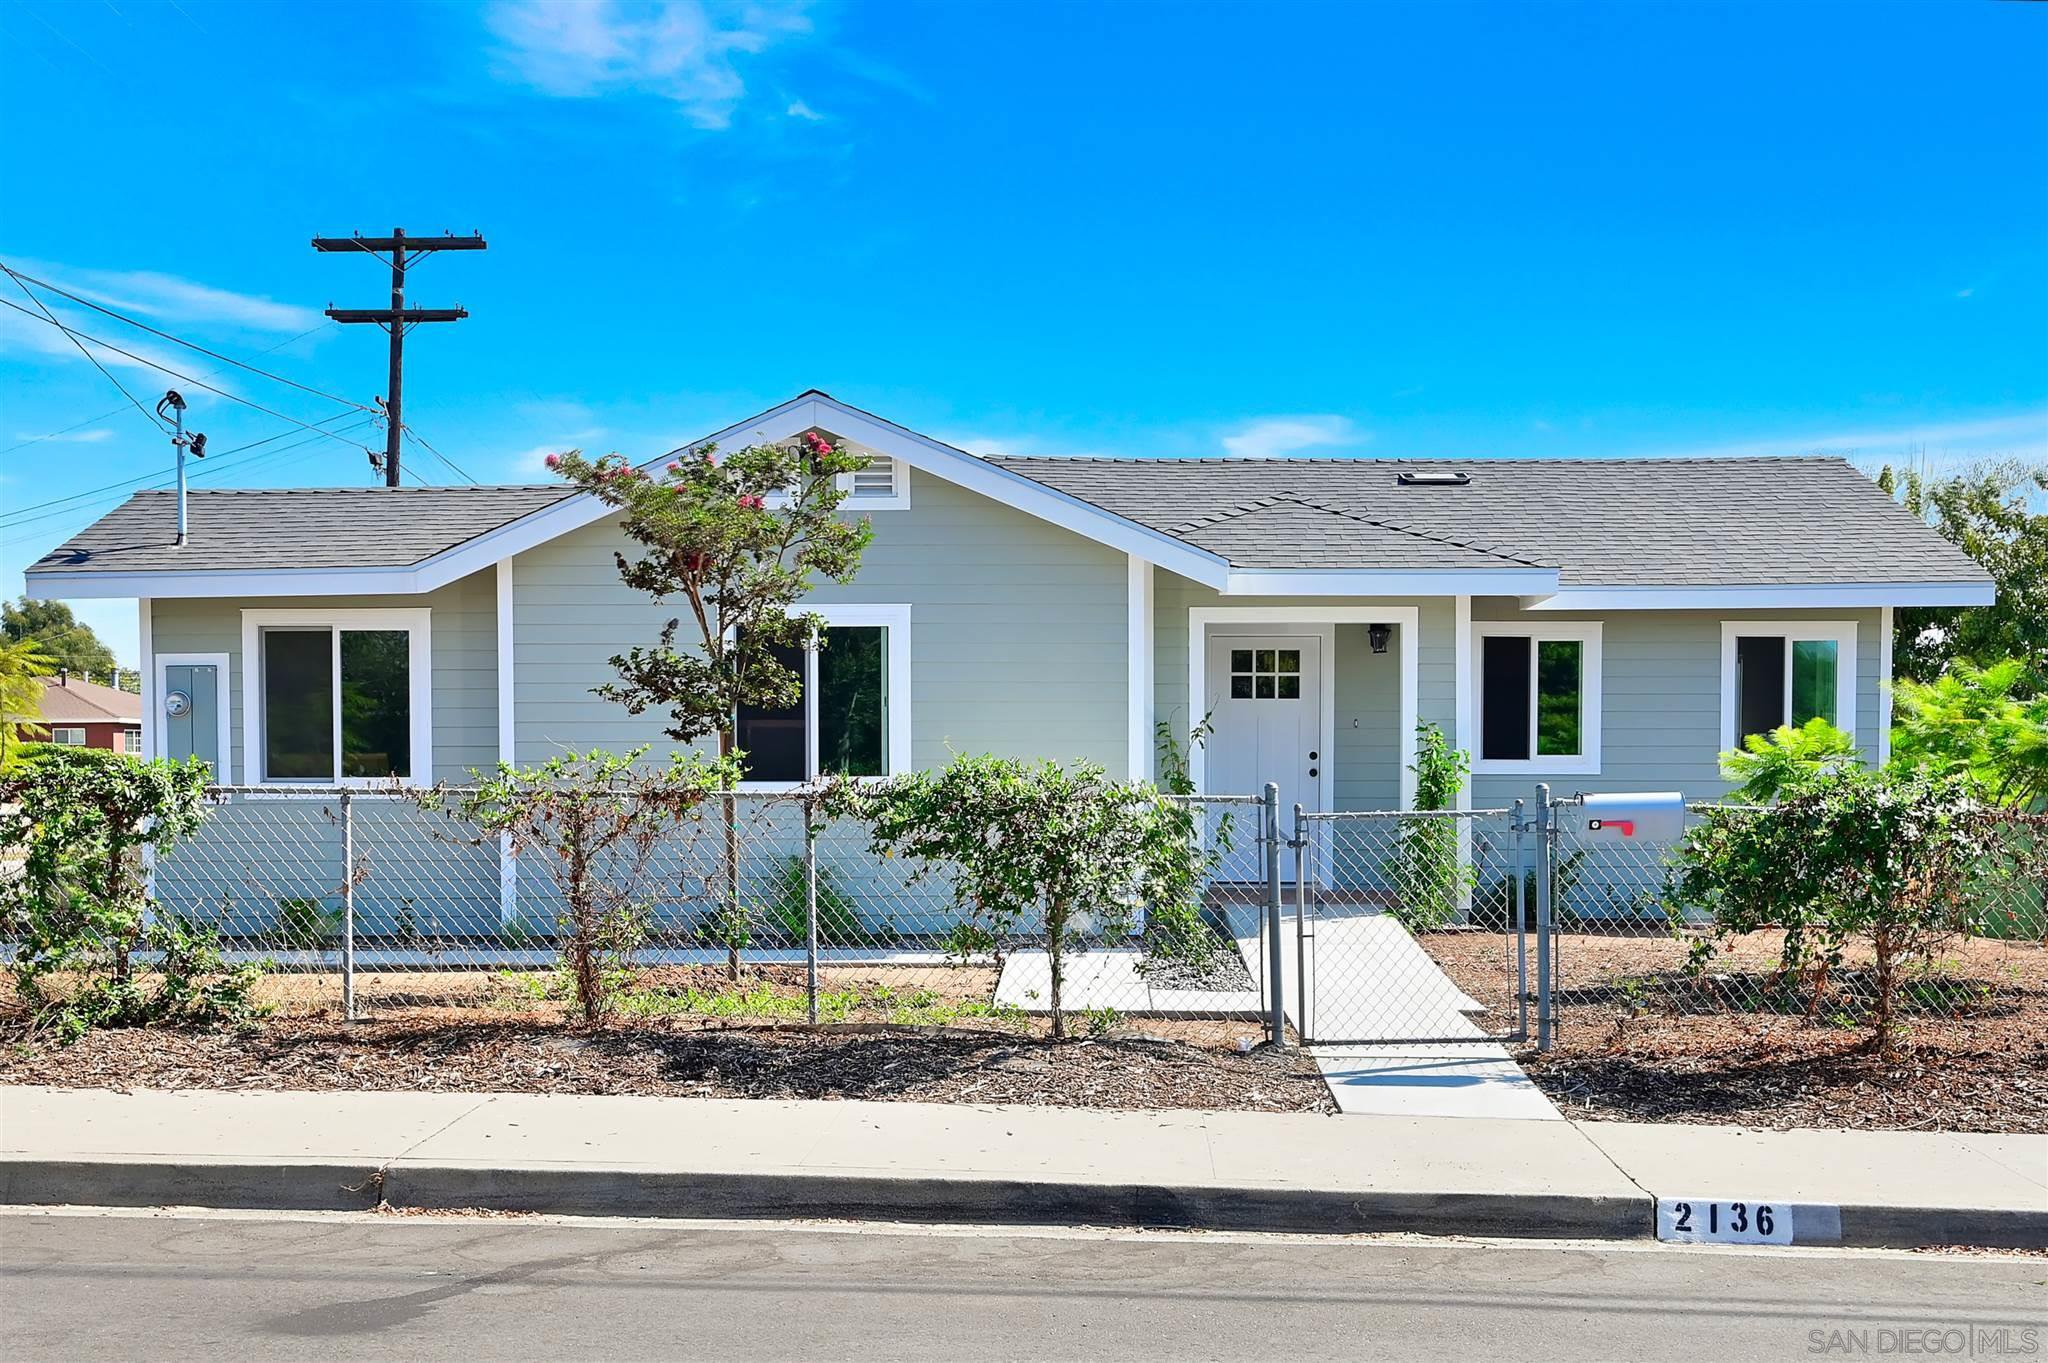 Main Photo: NATIONAL CITY House for sale : 4 bedrooms : 2136 22nd